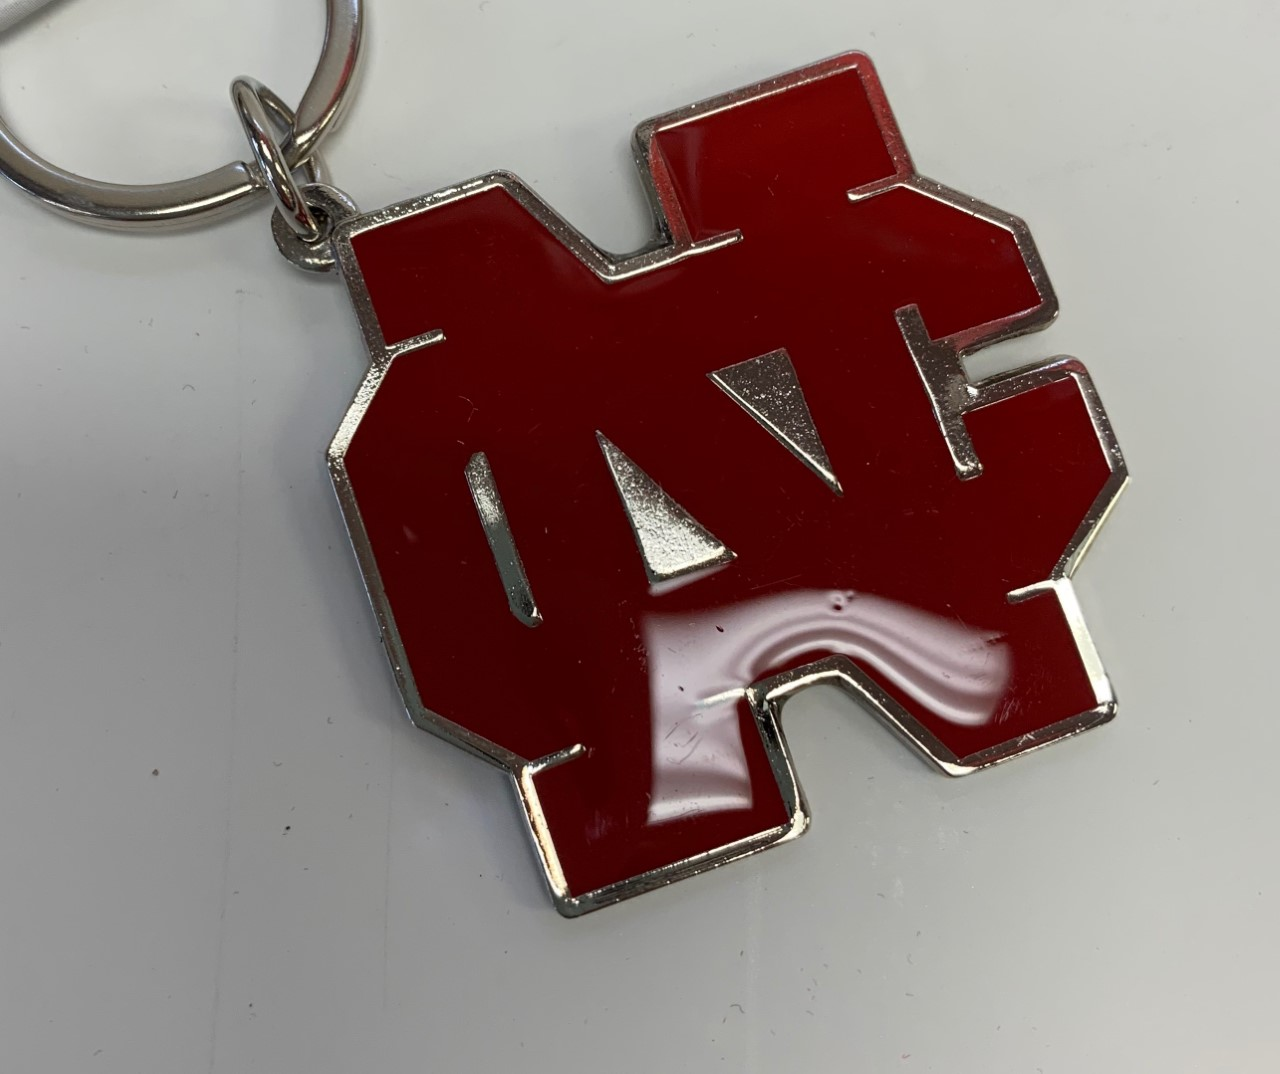 Image for the Metal NCC Keychain product